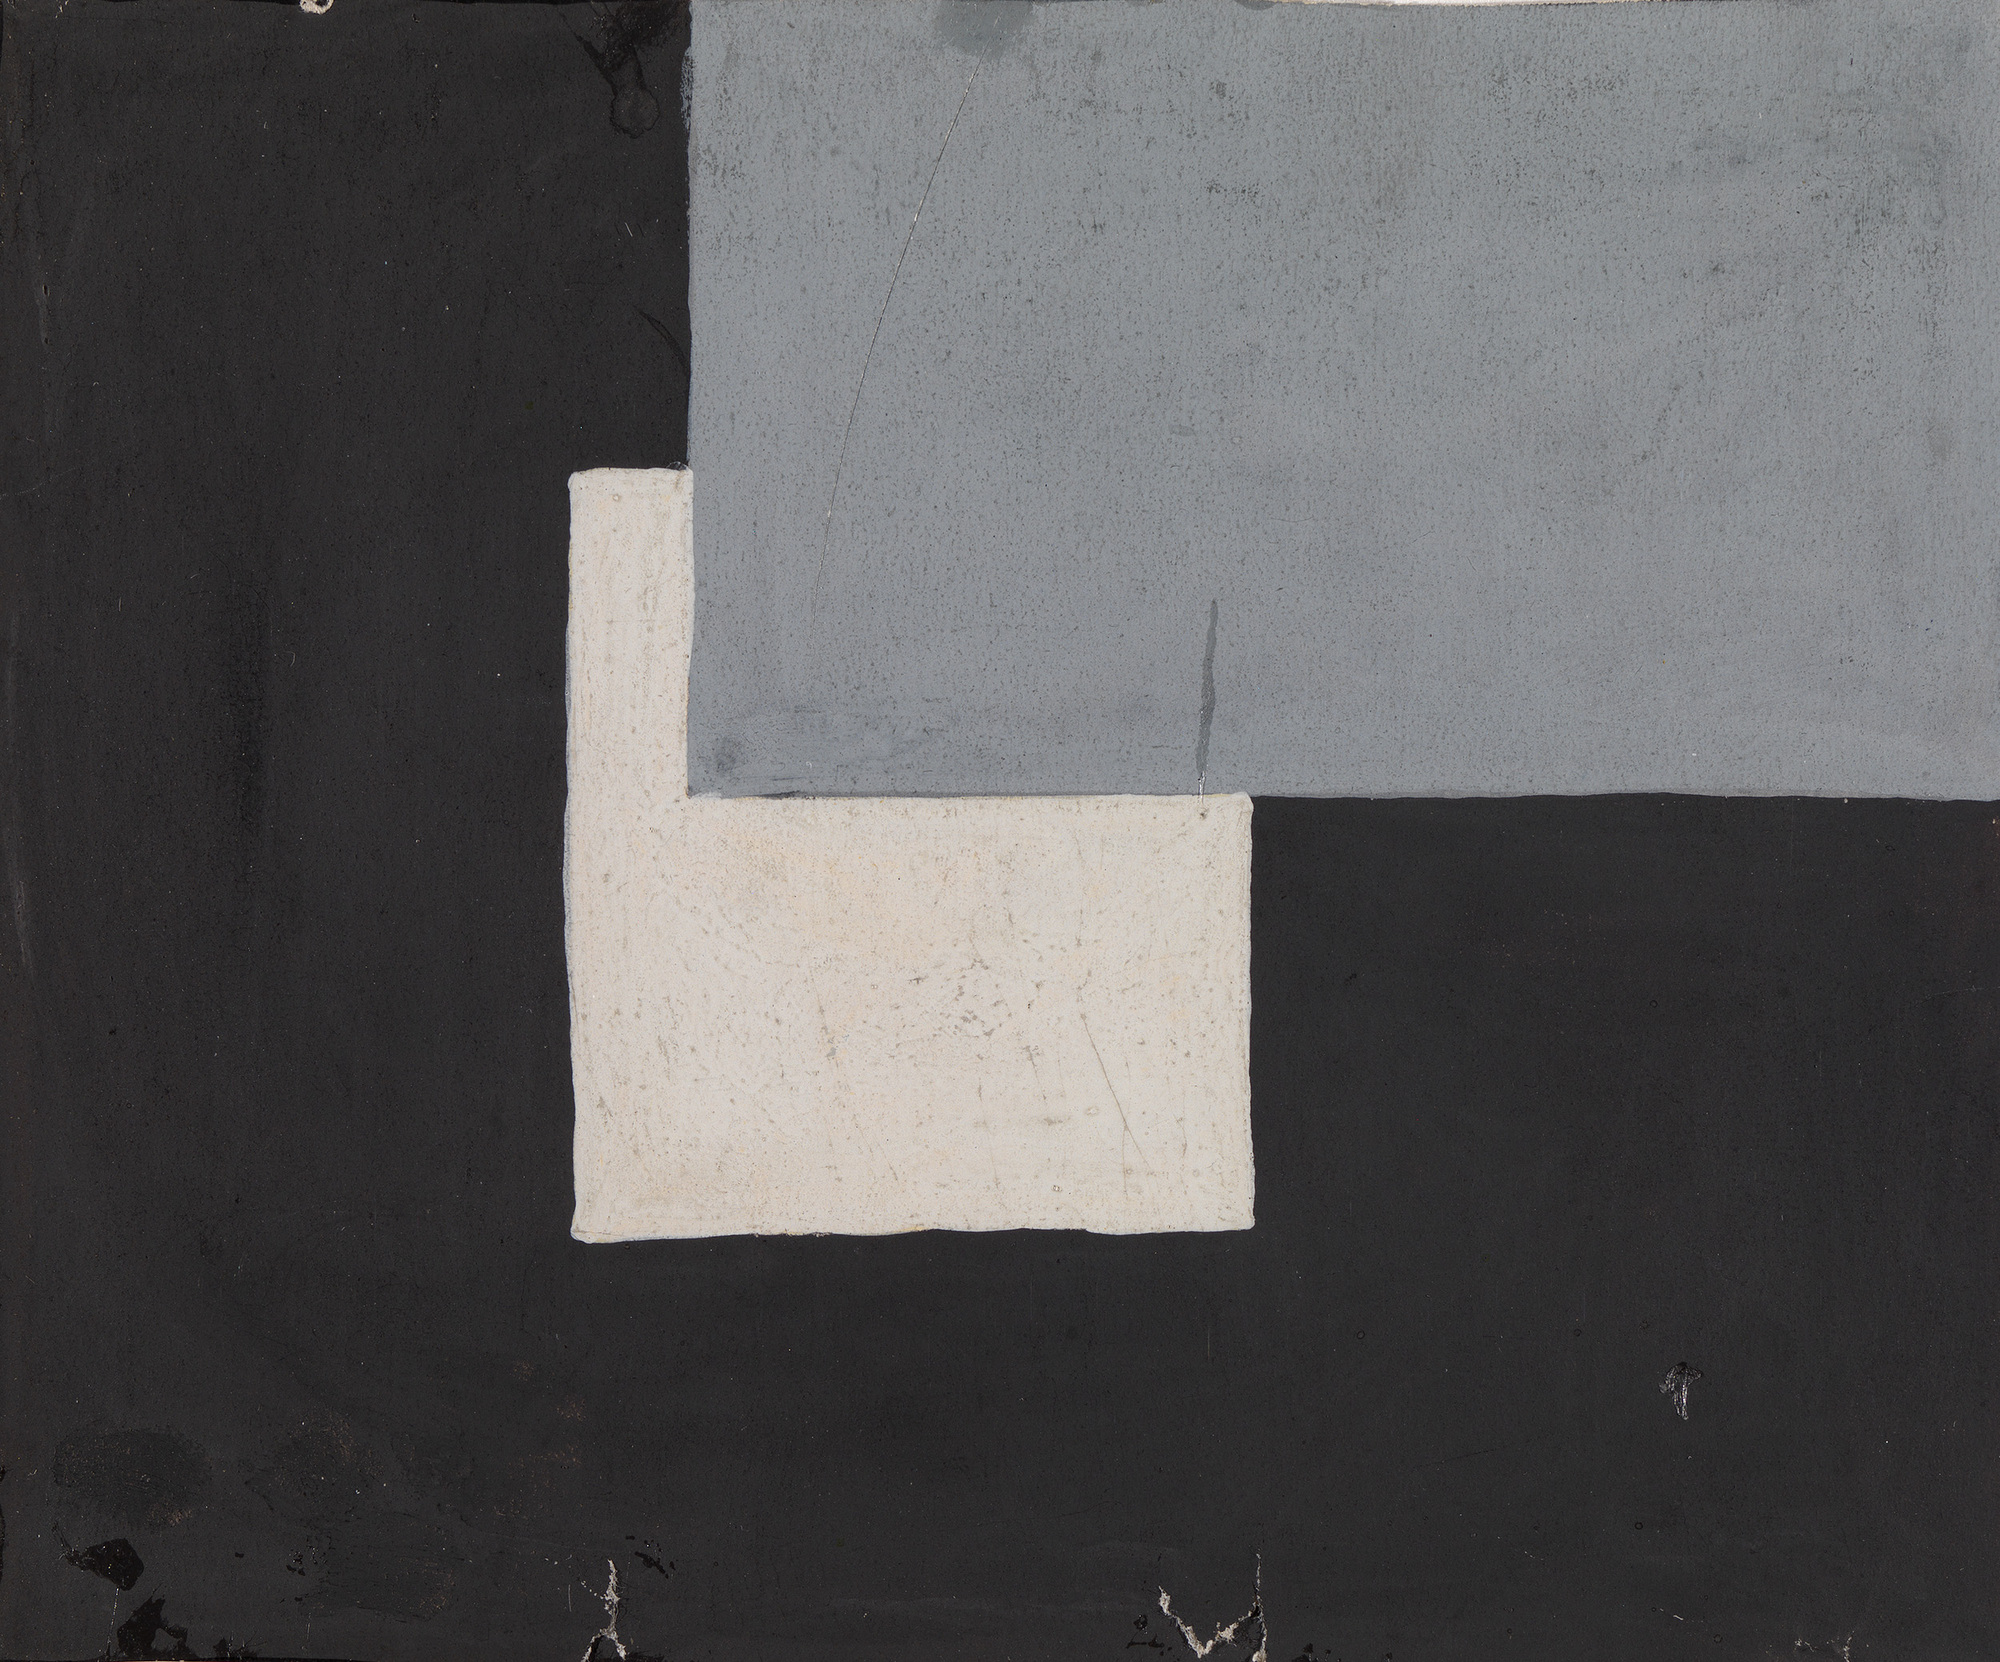 Tapis Eileen Gray Gallery Of Eileen Gray The Private Painter 19